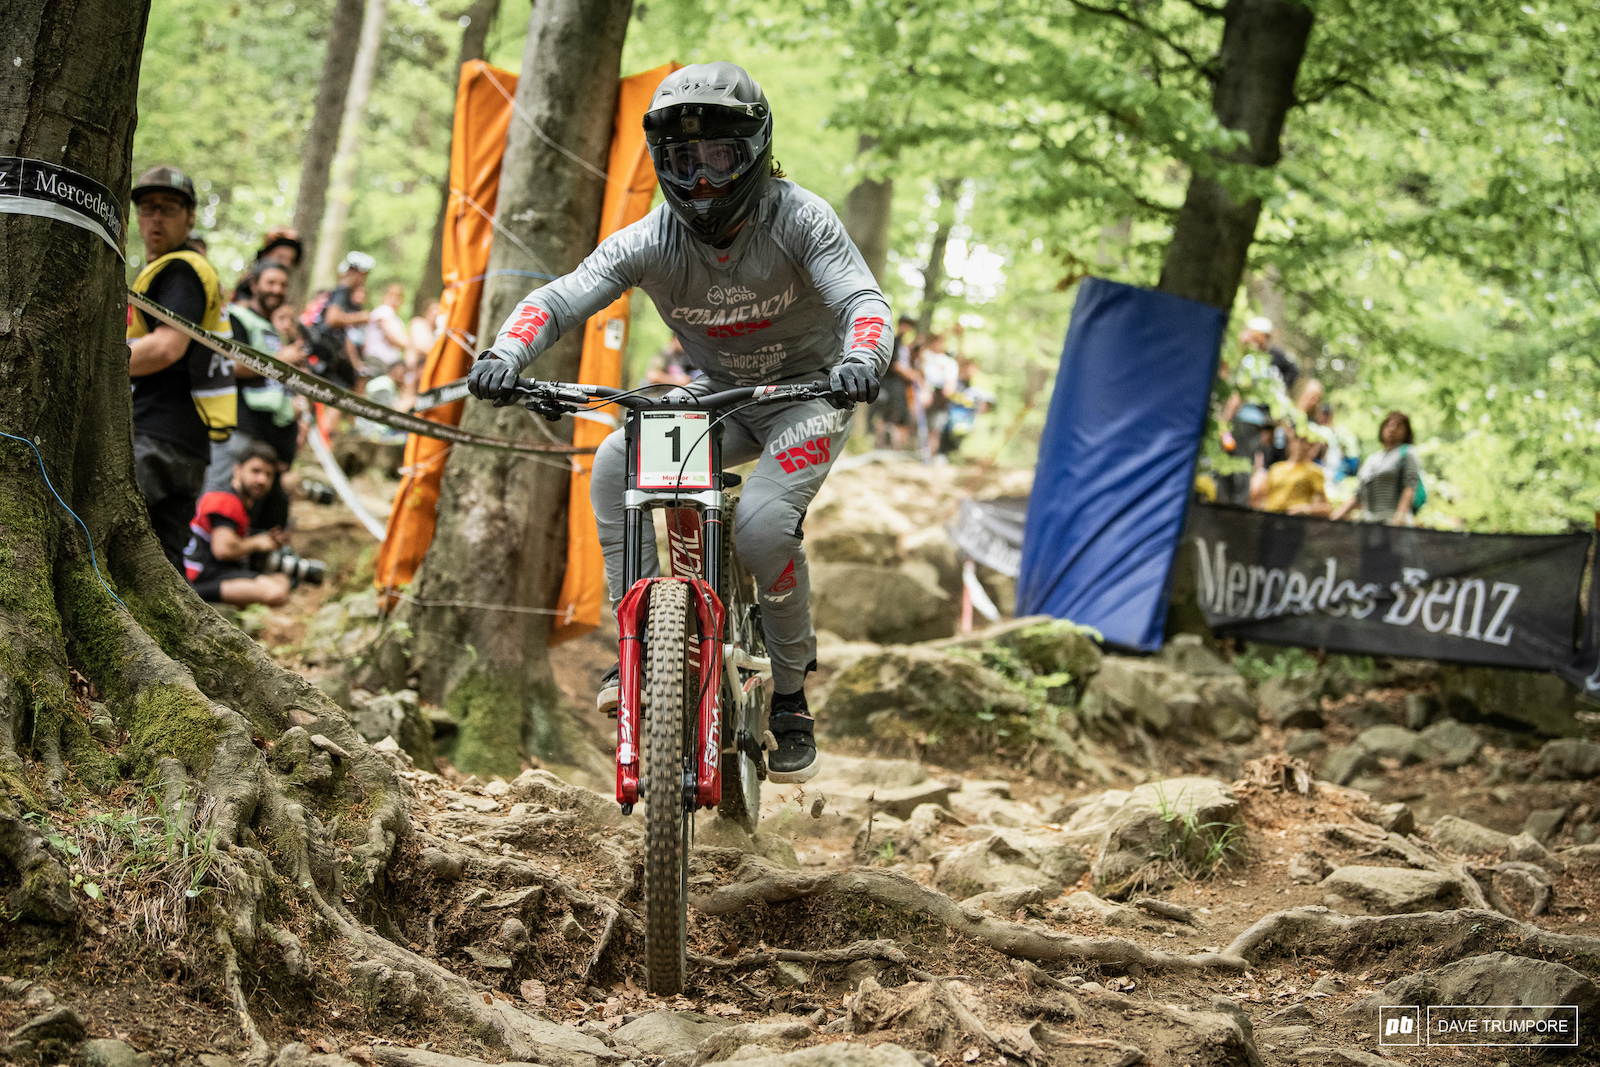 Defending junior champ Thibaut Daprela was one of the fastest through the rock garden out of anyone